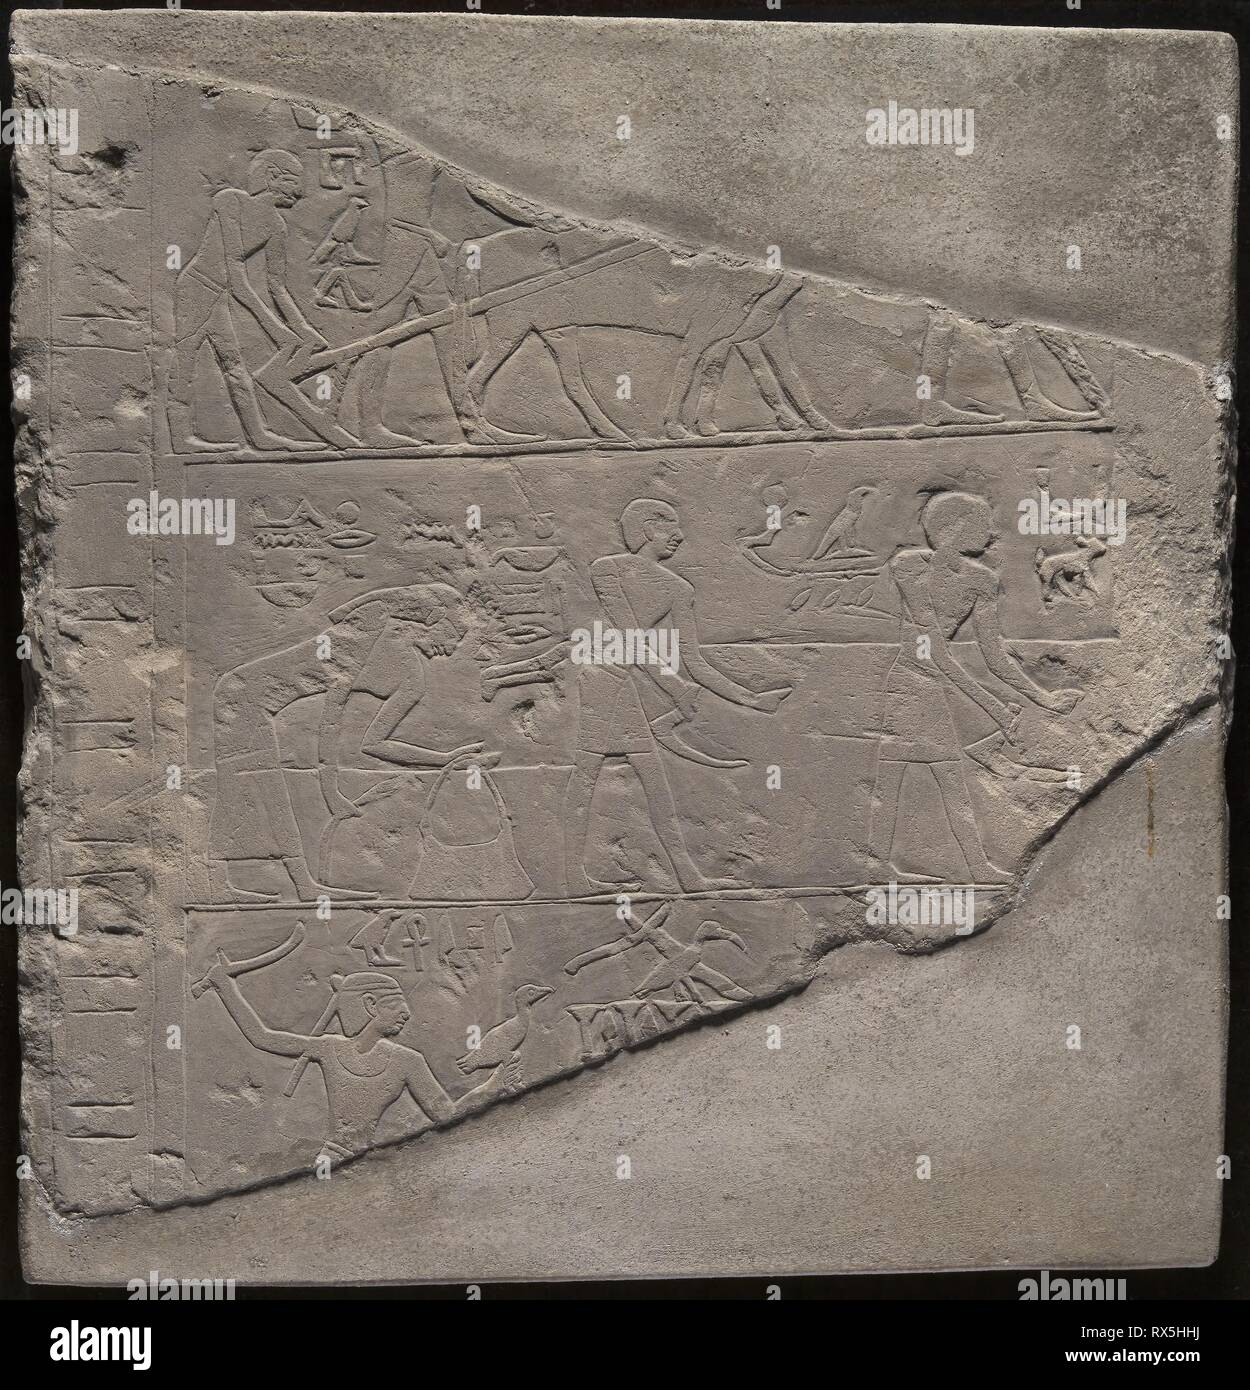 Fragment of a Stela Depicting Plowing, Harvesting, and